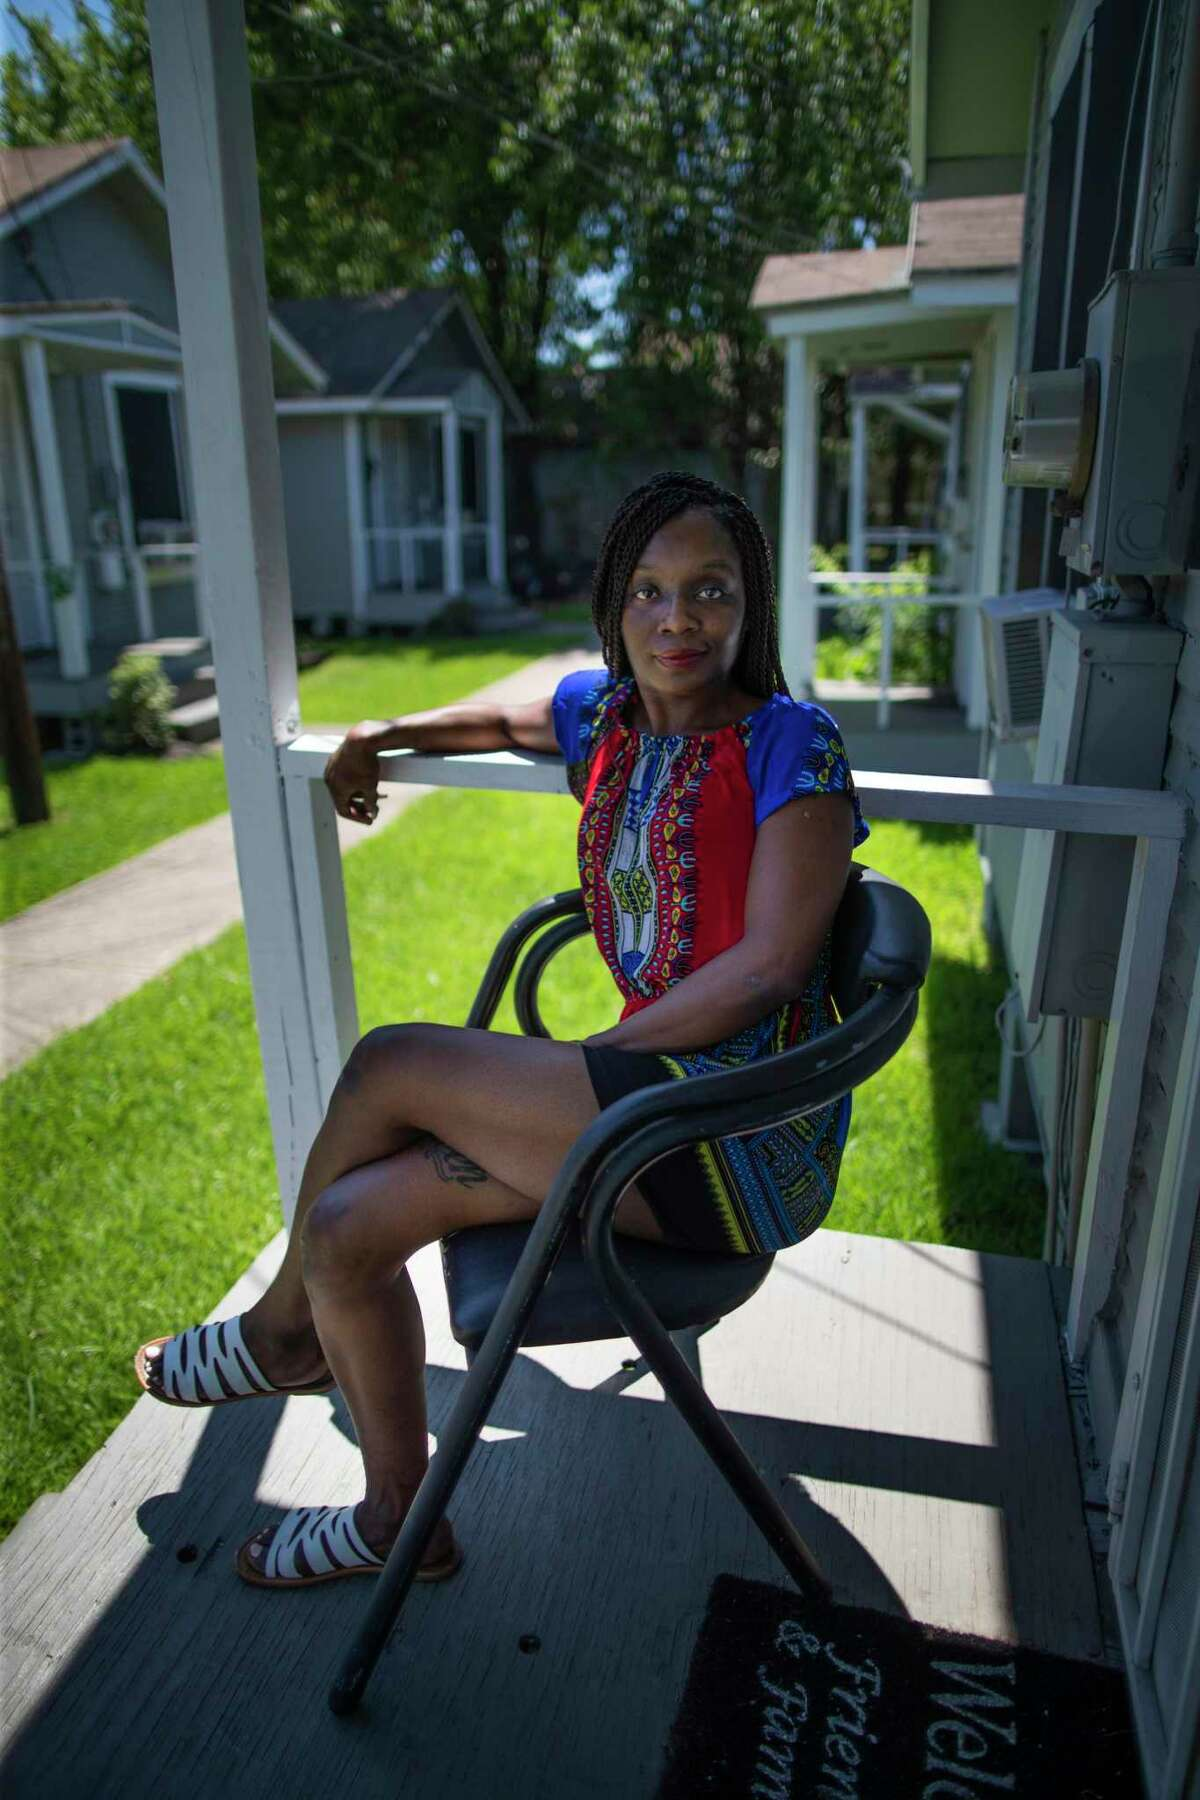 Chris Senegal's tenant Carolyn Young, 40, at her home located in Senegal's development in Fifth Ward on Saturday, June 13, 2020, in Houston.